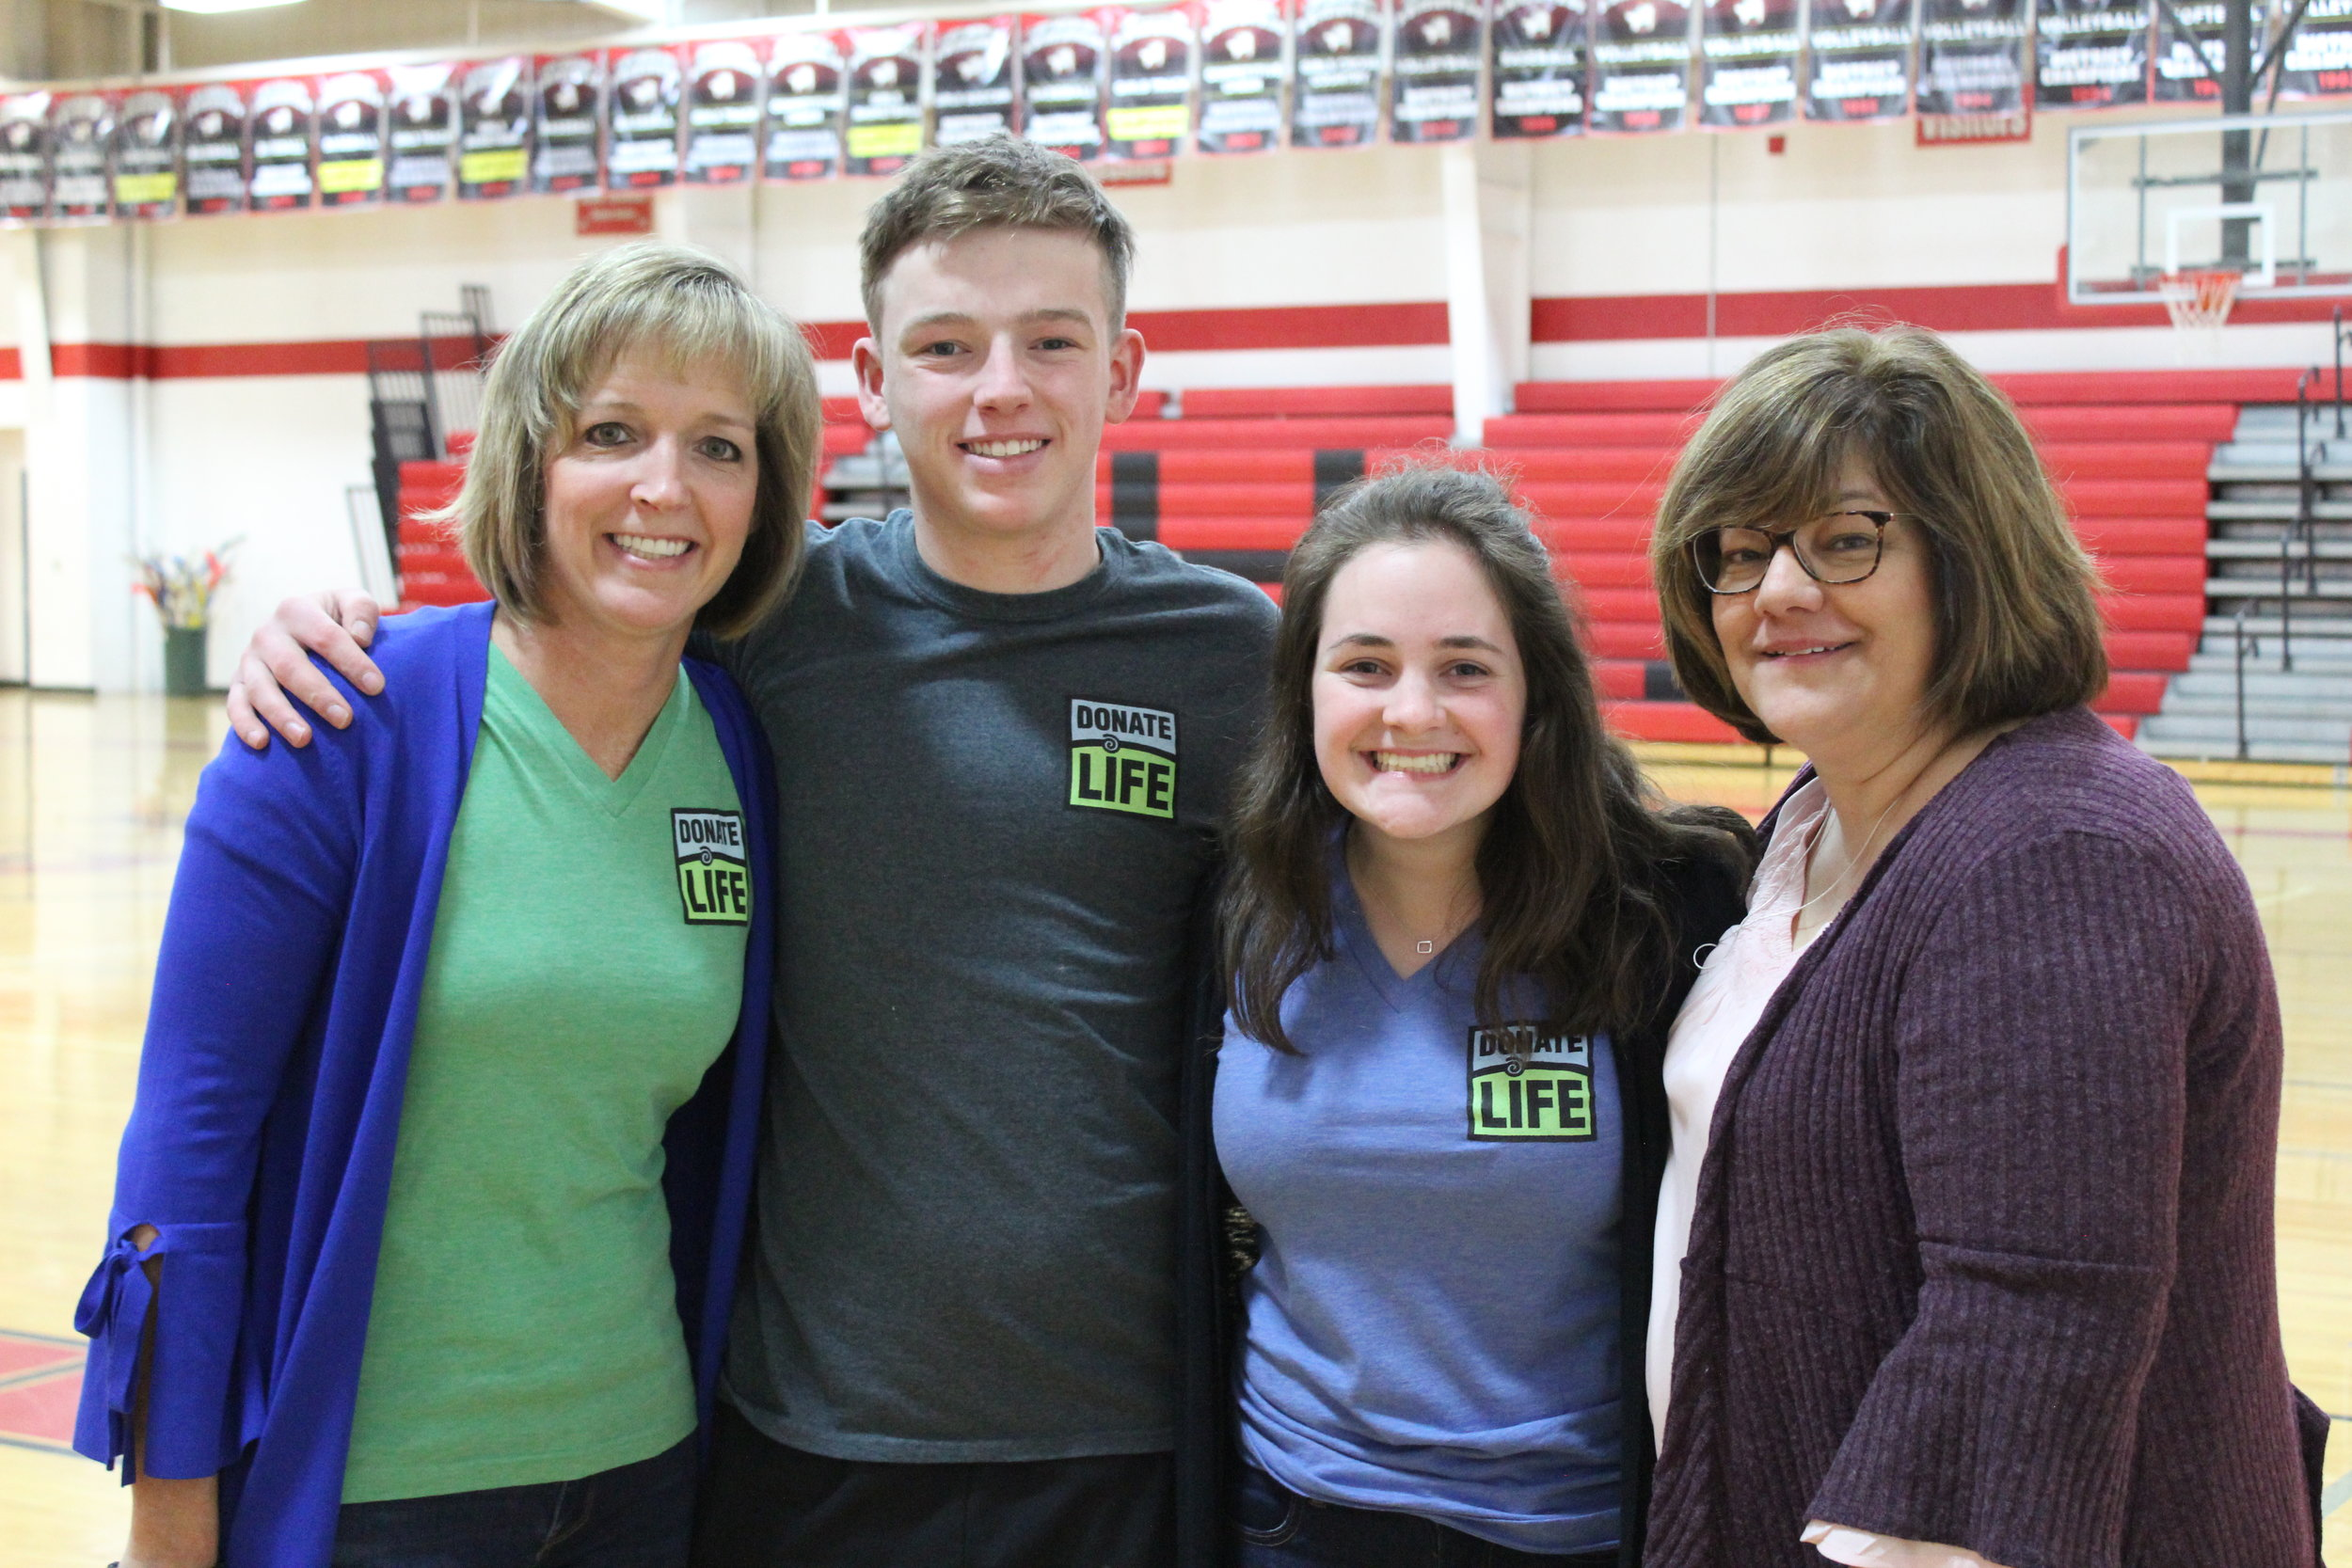 Tommy Schomaker with mom Colleen and Jenna Ozerities with mom Gretchen